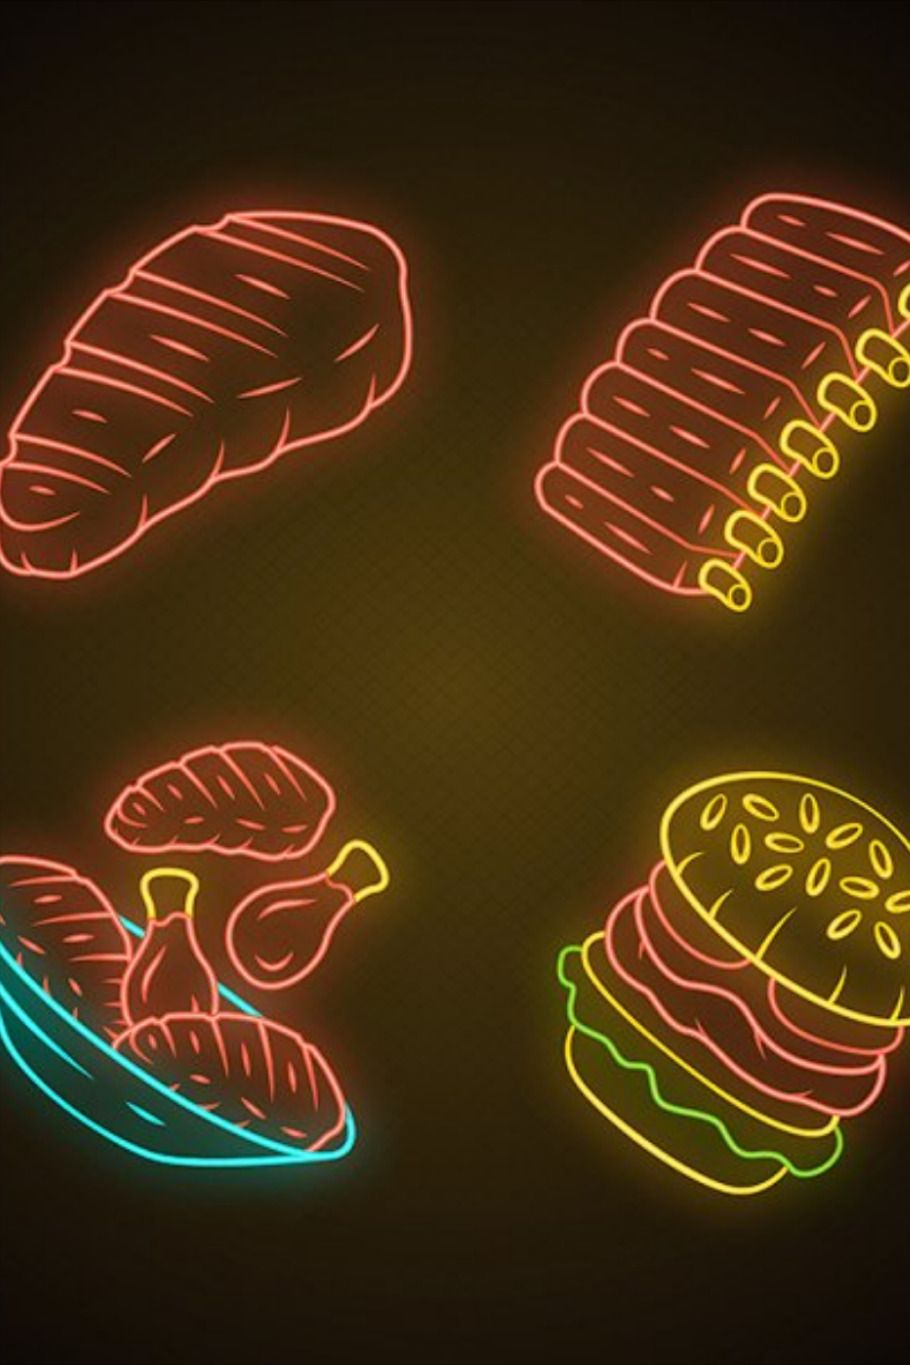 Meat dishes neon light icons set. Steak, beef ribs